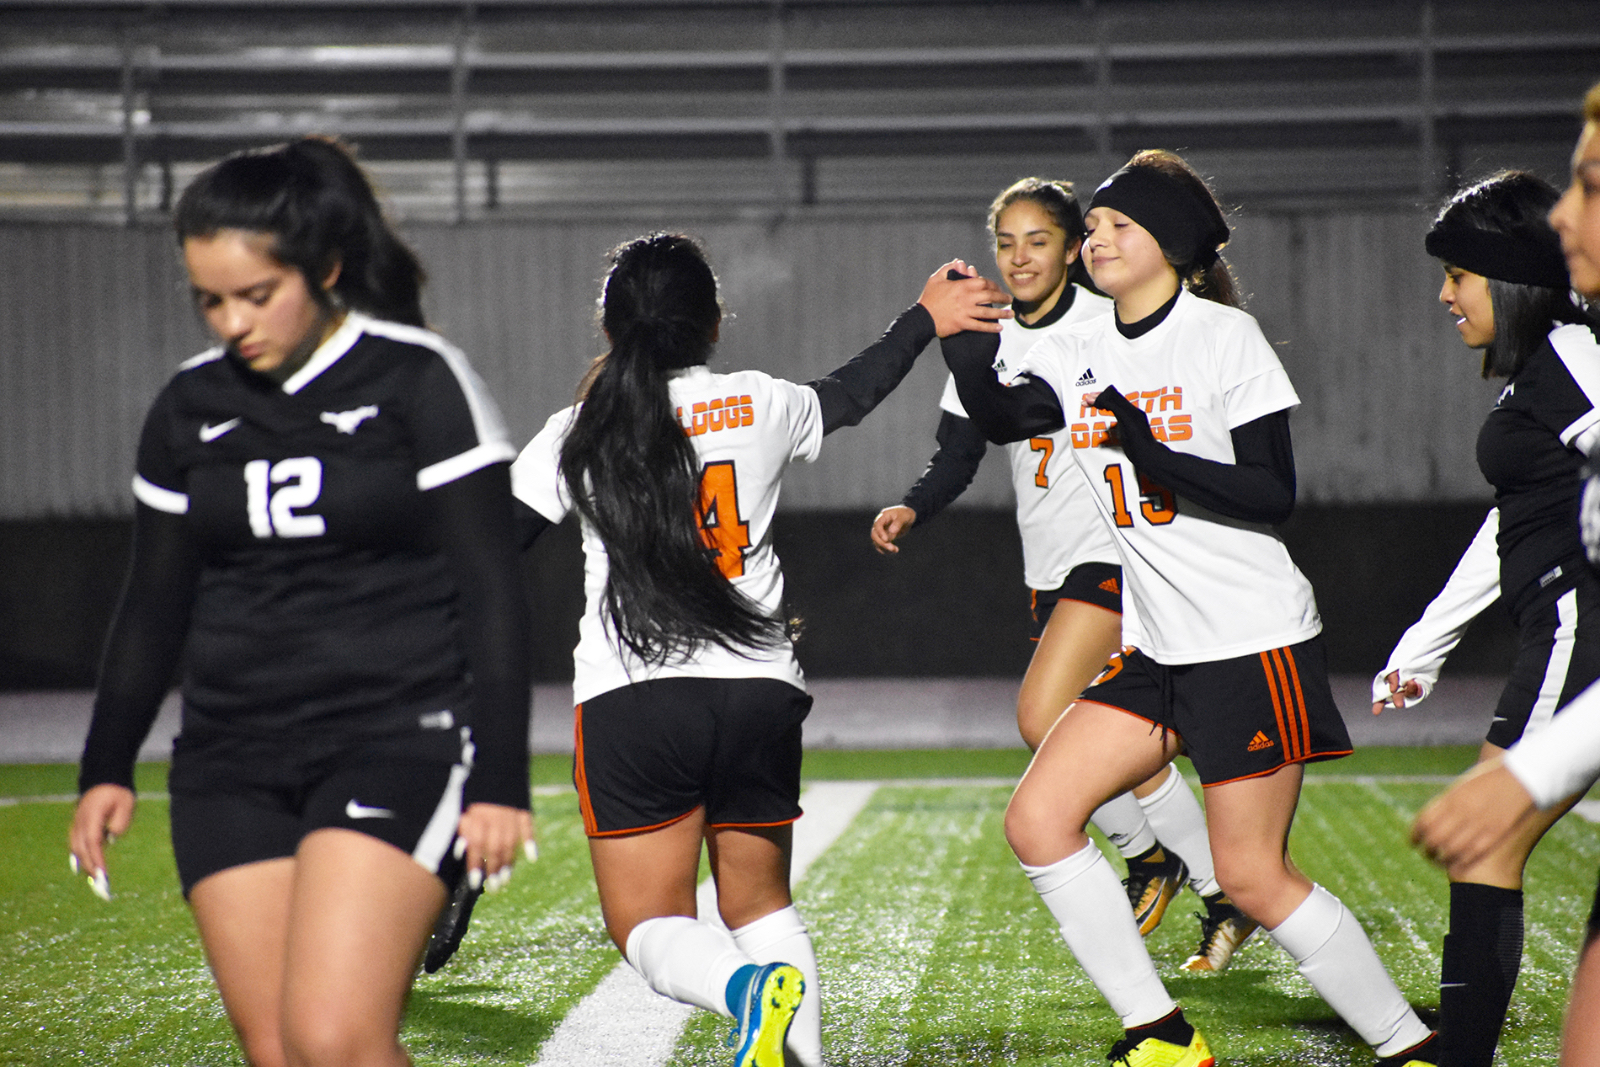 Lady Bulldogs keep the heat on in 10-1 district win